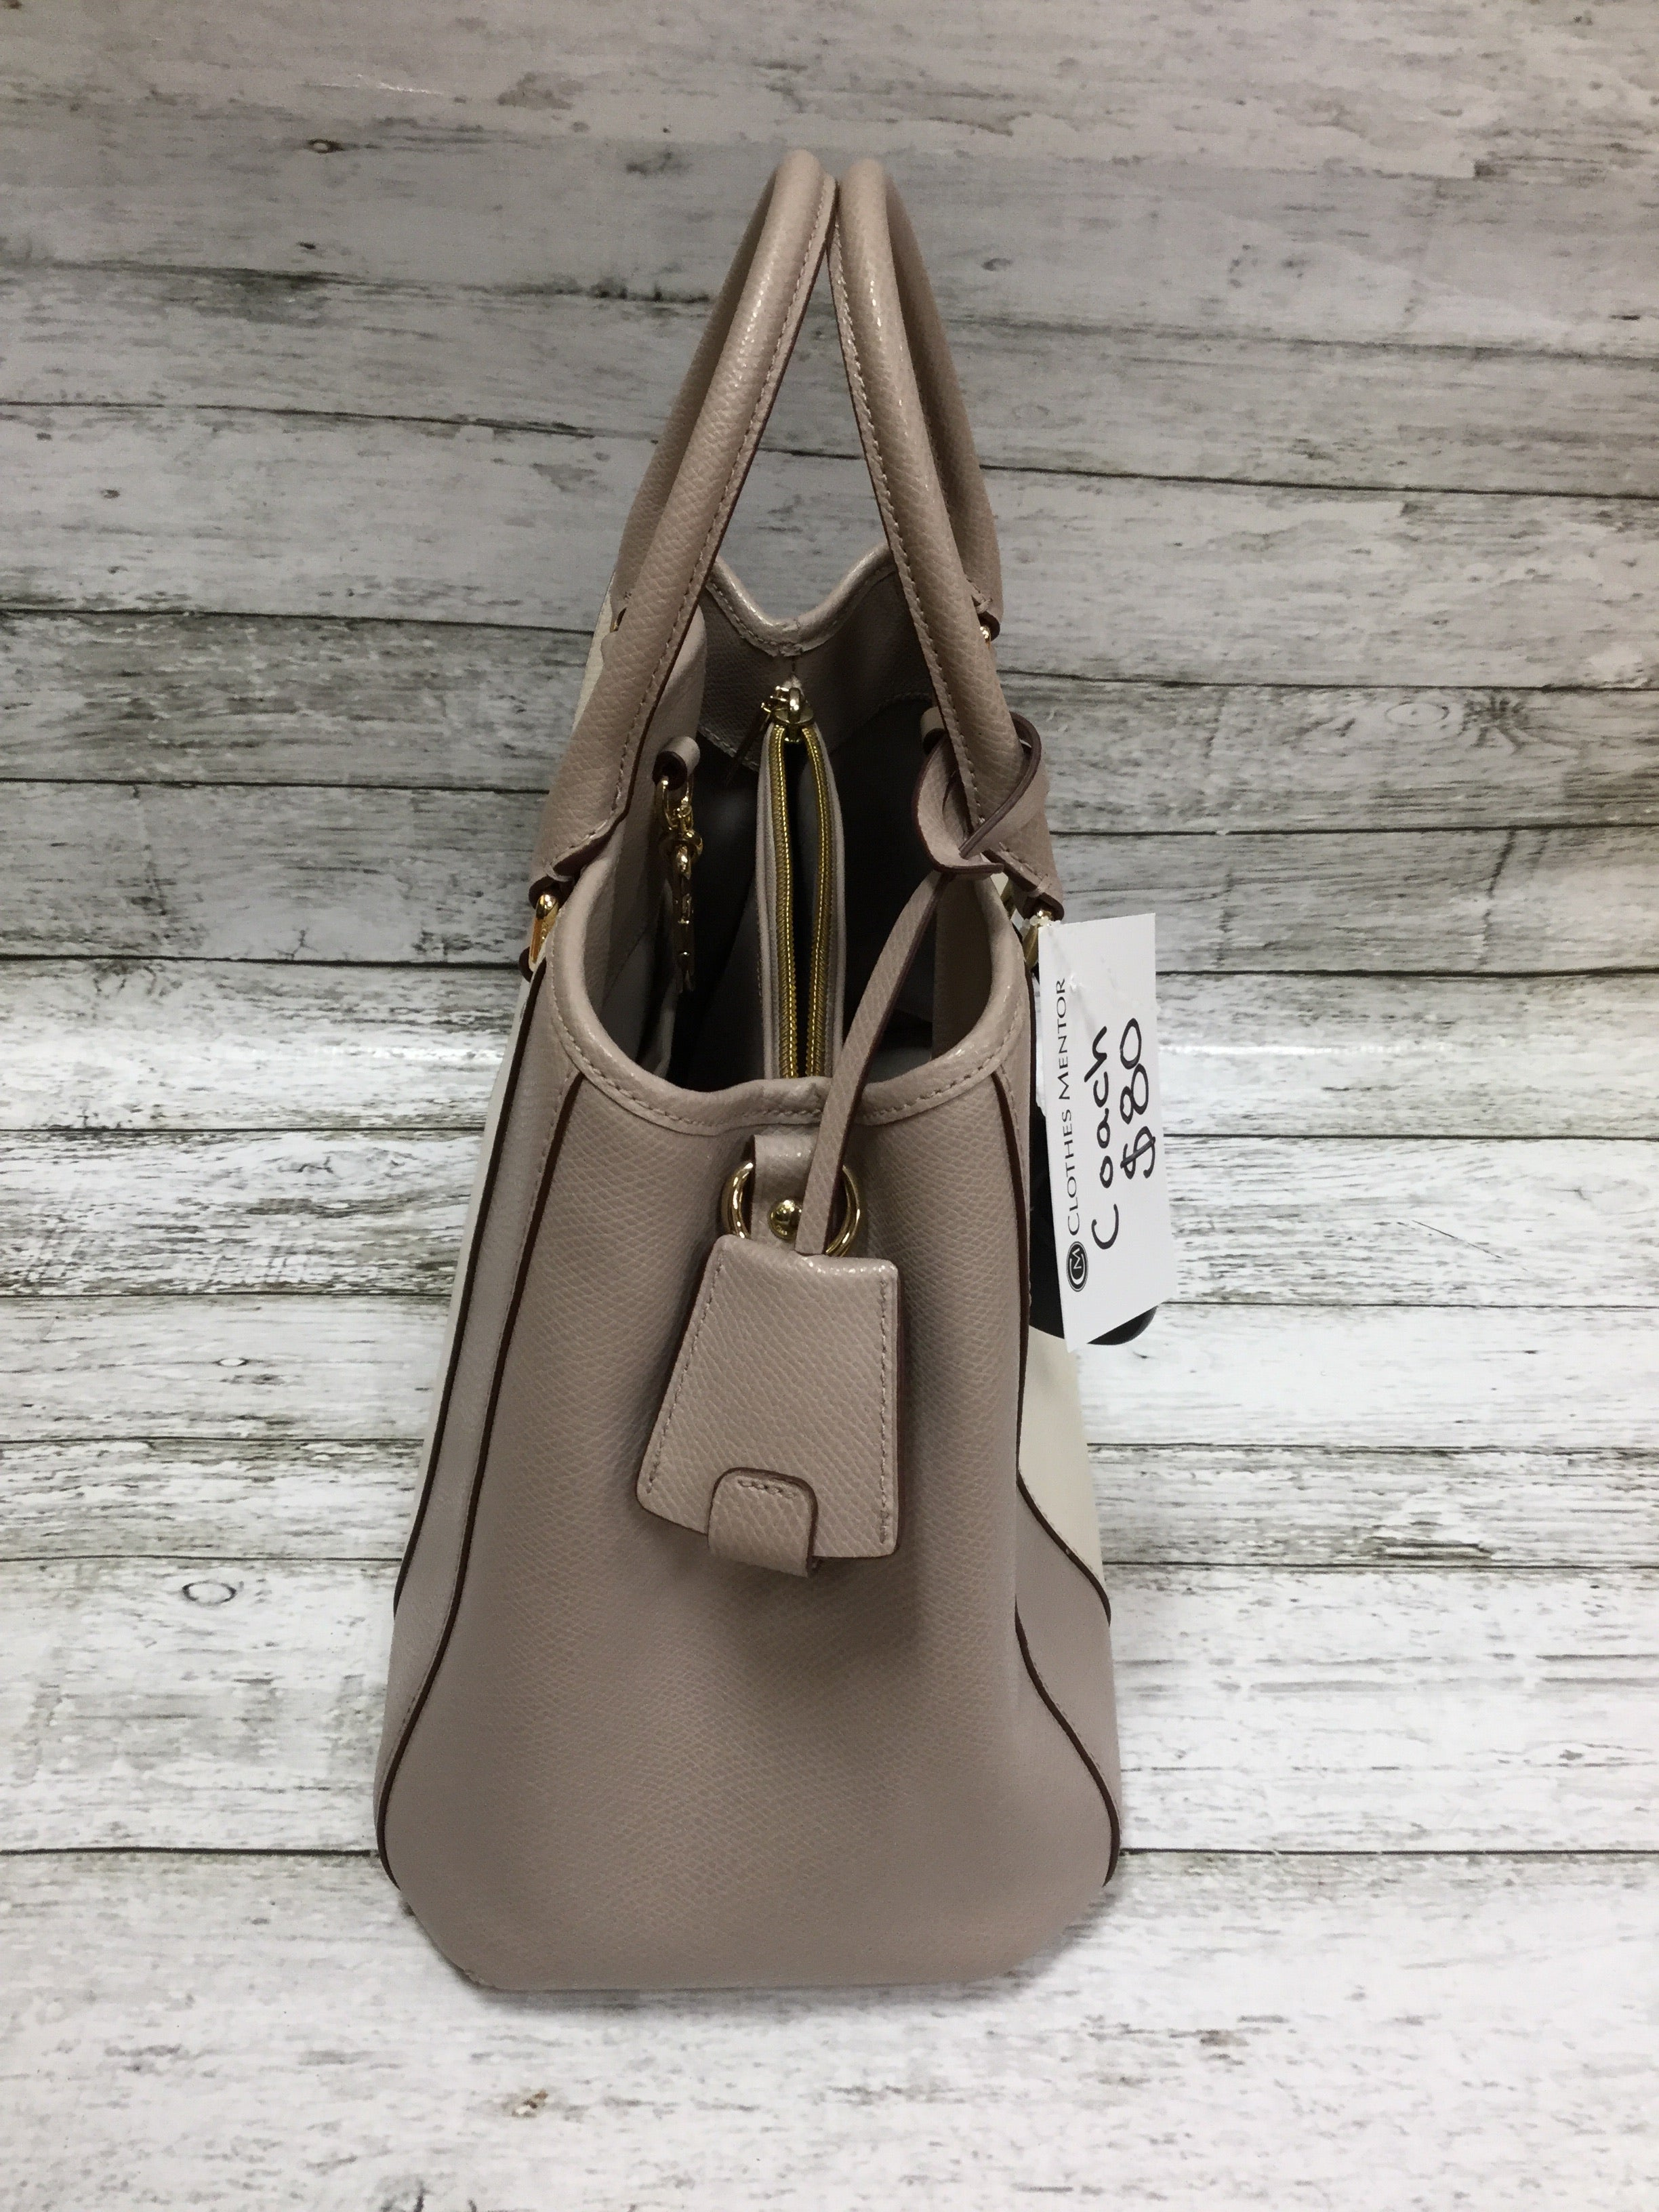 Photo #3 - BRAND: COACH <BR>STYLE: HANDBAG DESIGNER <BR>COLOR: GREY <BR>SIZE: MEDIUM <BR>SKU: 127-4942-1996